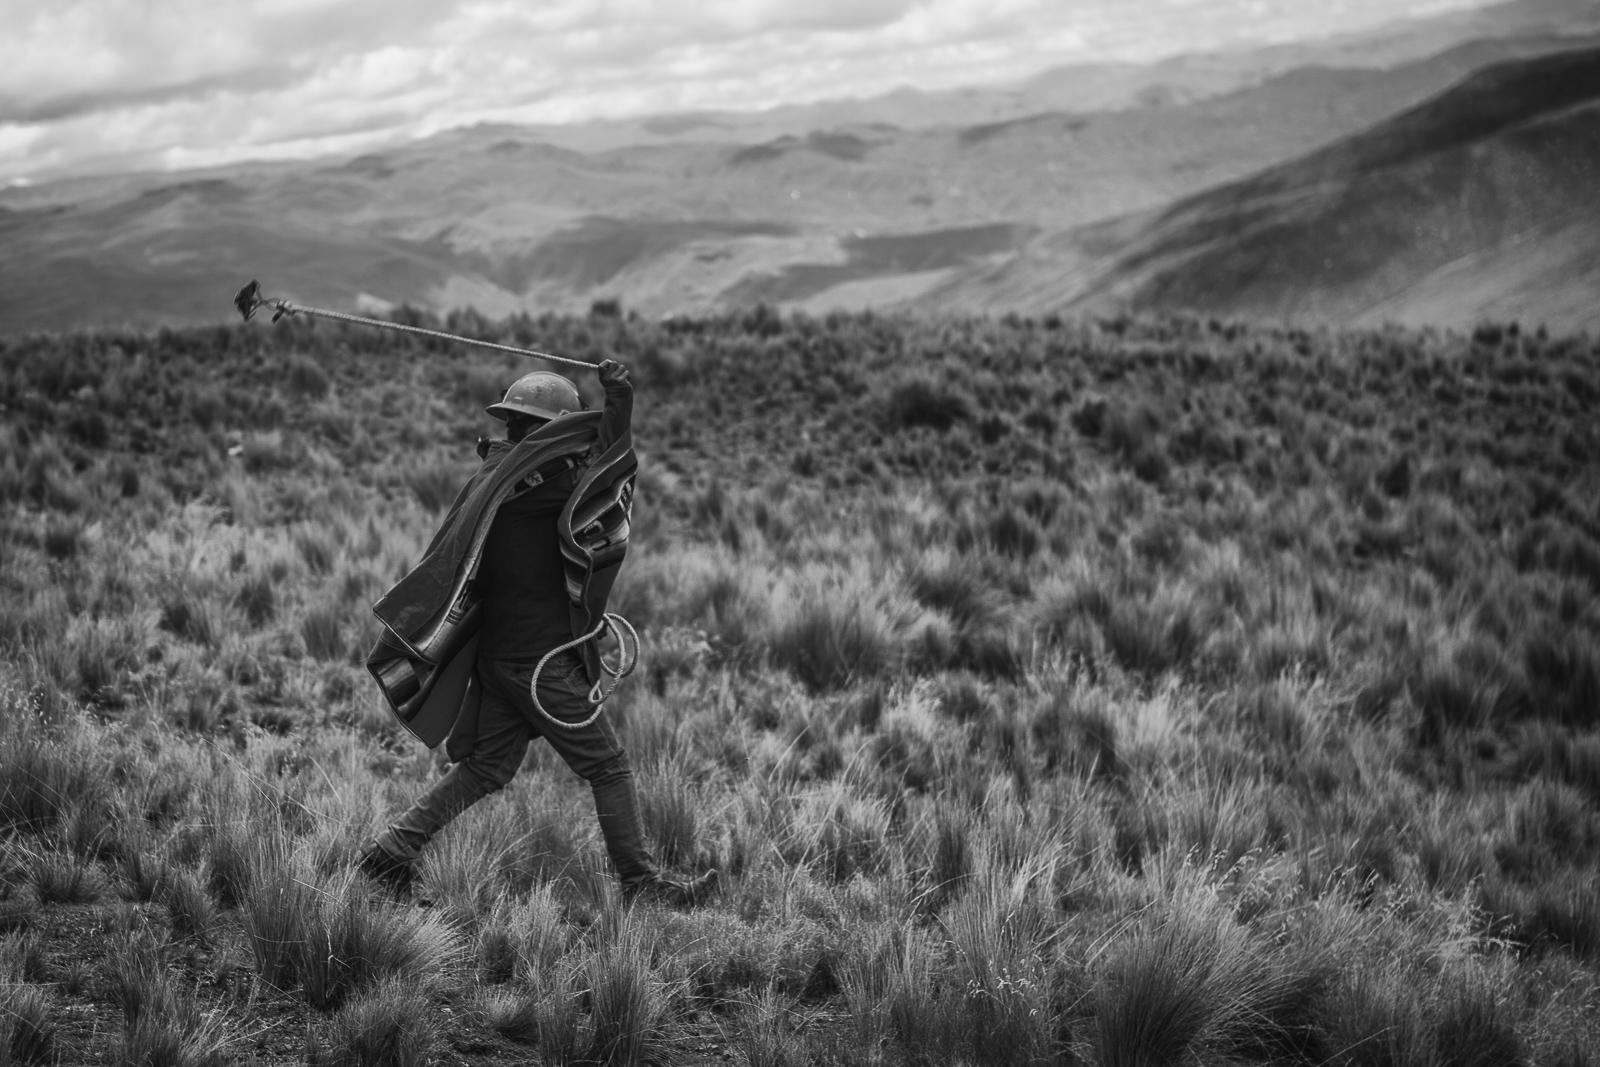 Man running with a slingshot or huaraca. The ritual is sacred to the people in Canas. The victor communities will ensure a thriving year for their farming activities.